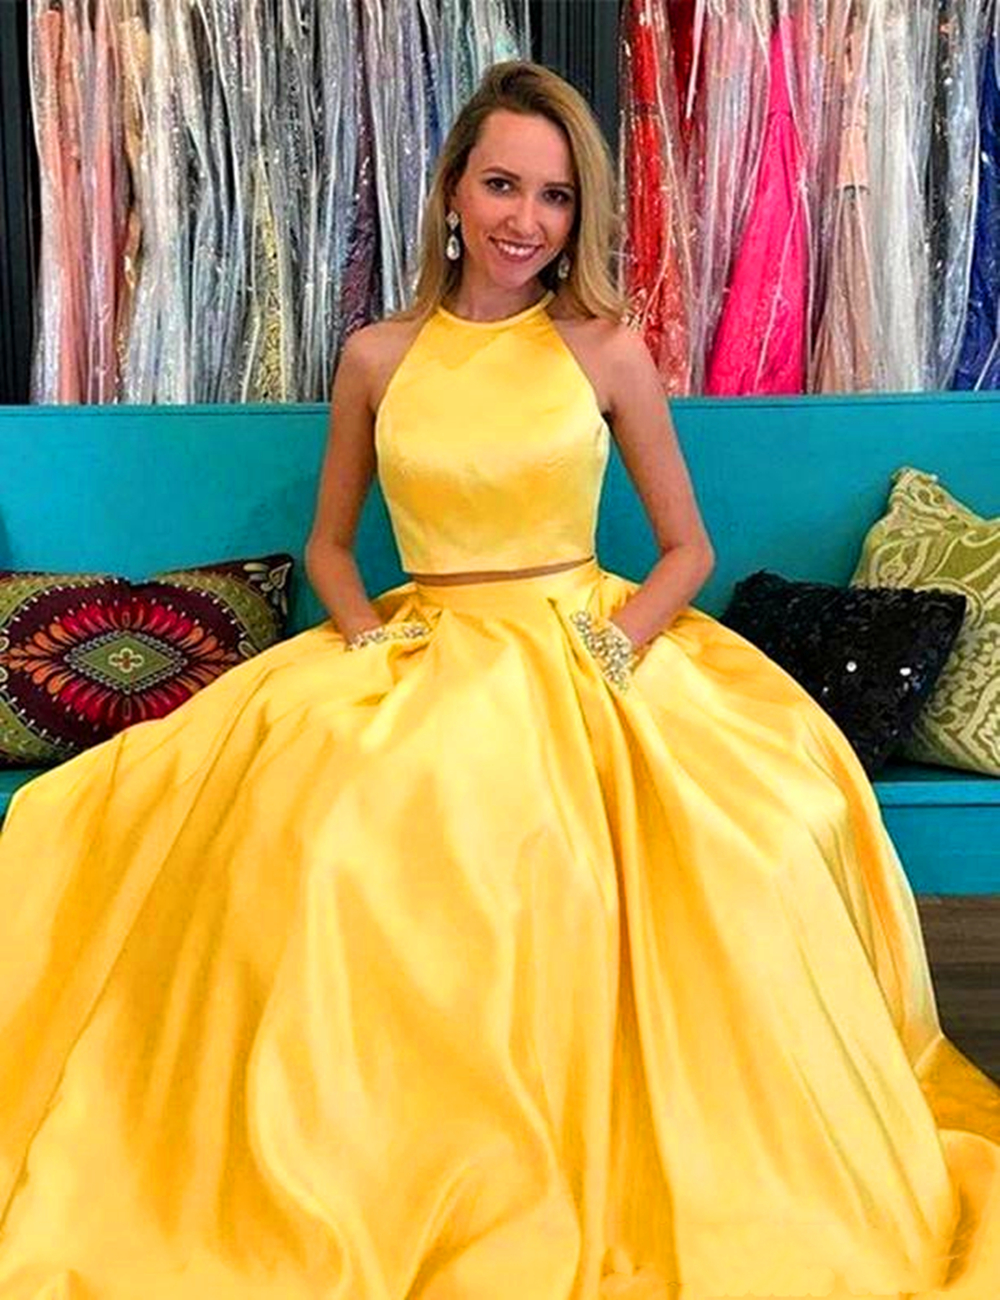 536e7a9beed 🔥 (SPECIAL PRICE) 2019 Simple Evening Dresses Yellow Satin Two ...